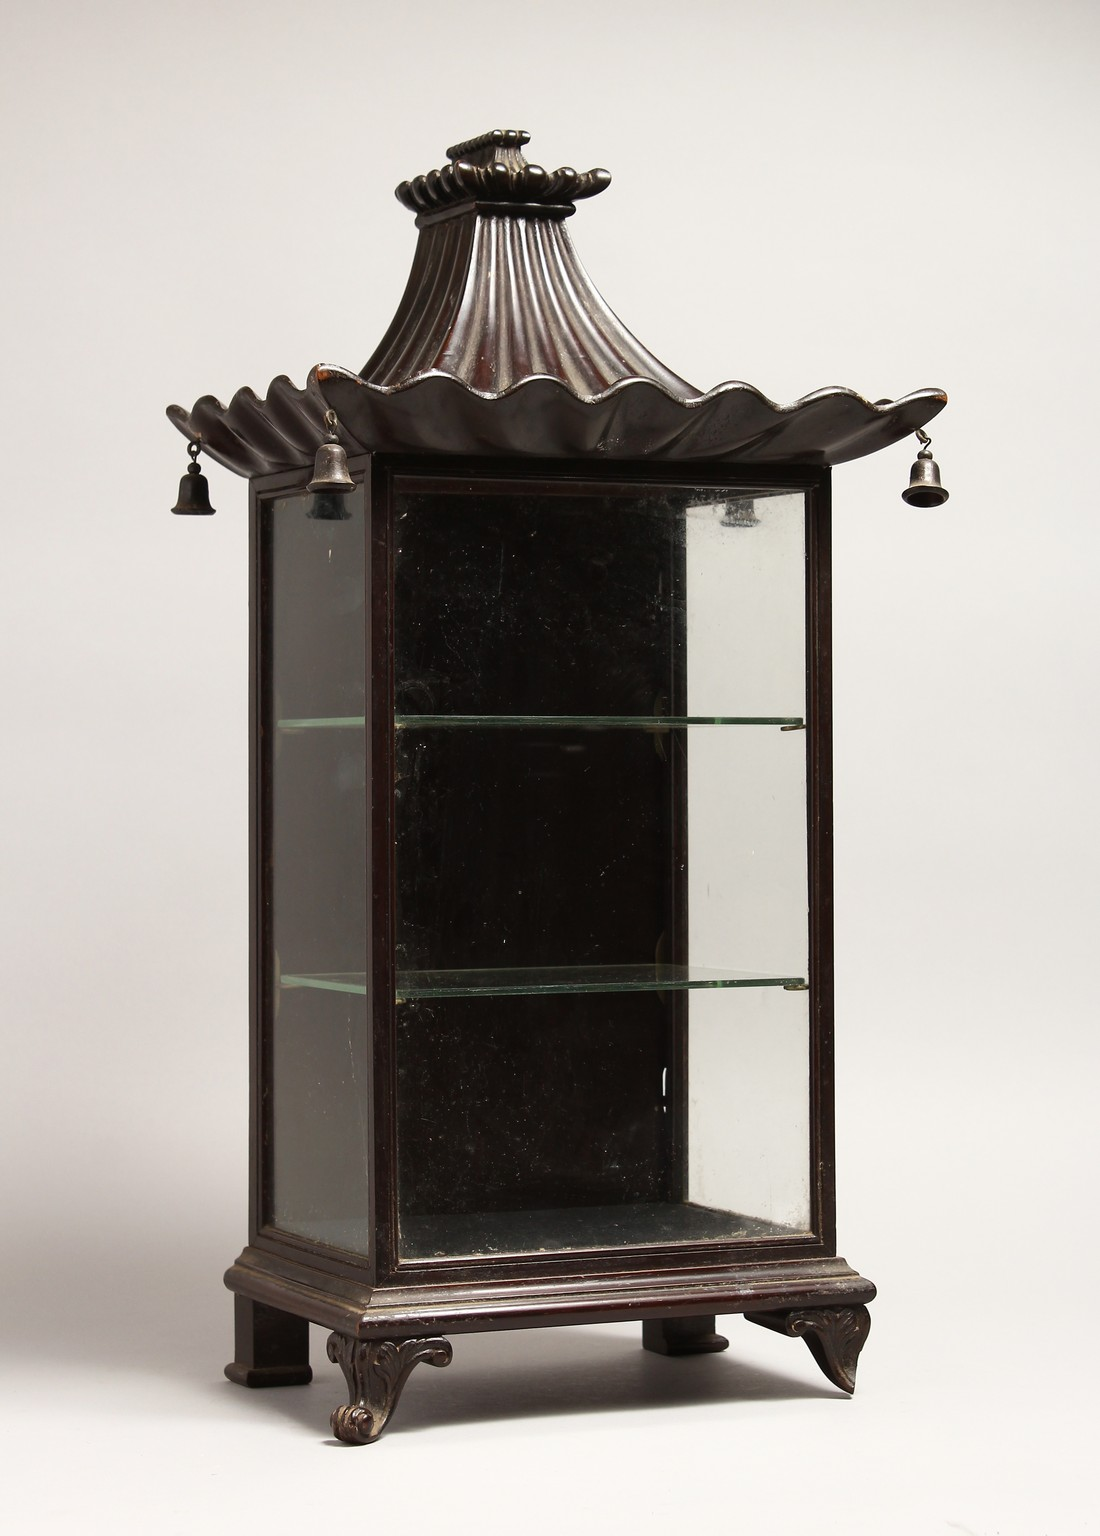 A GOOD GEORGIAN DESIGN CHINESE STYLE, SHOW CASE with Pagoda top hung with bells 20ins high, 8ins